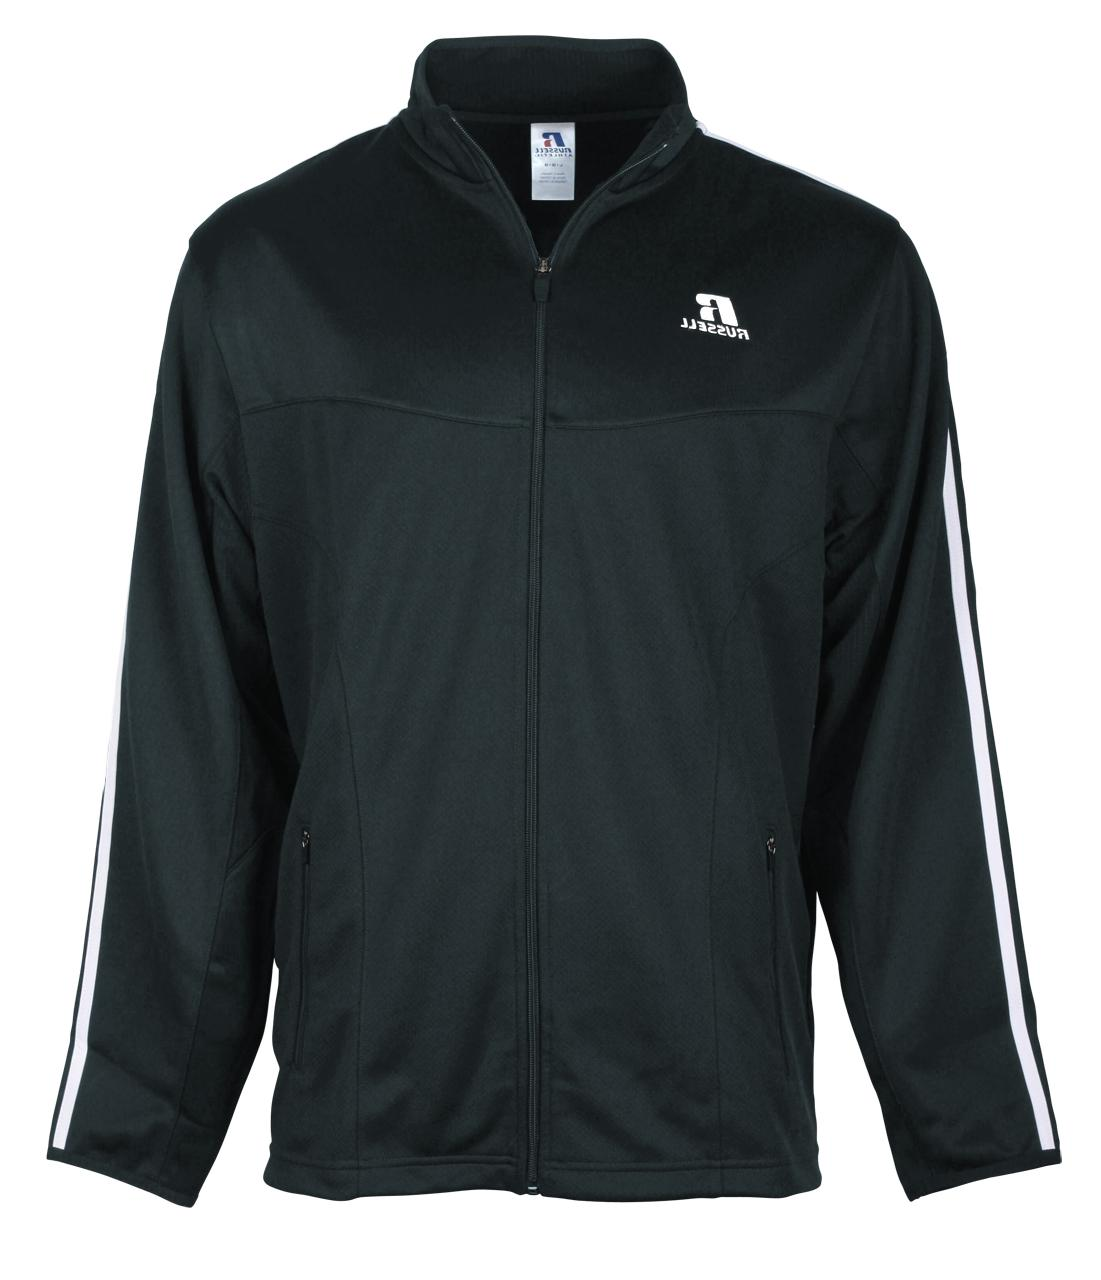 Russell Athletic GAMEDAY Full Athletic Thick Jacket